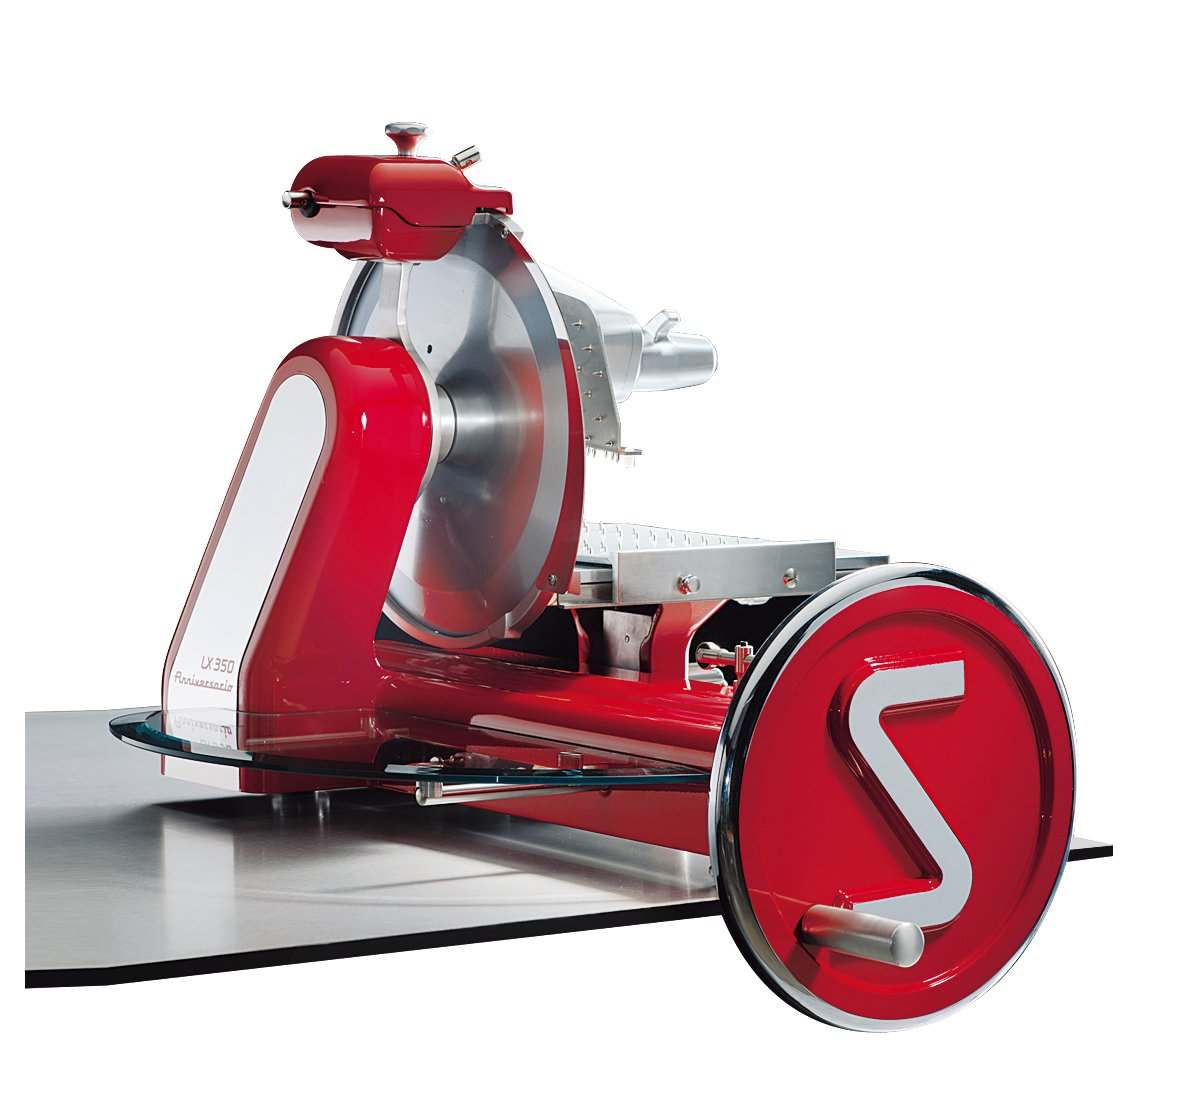 Sirman 11357100 Anniversario LX 350 Commercial 14Inch Slicer for Prosciutto, Full